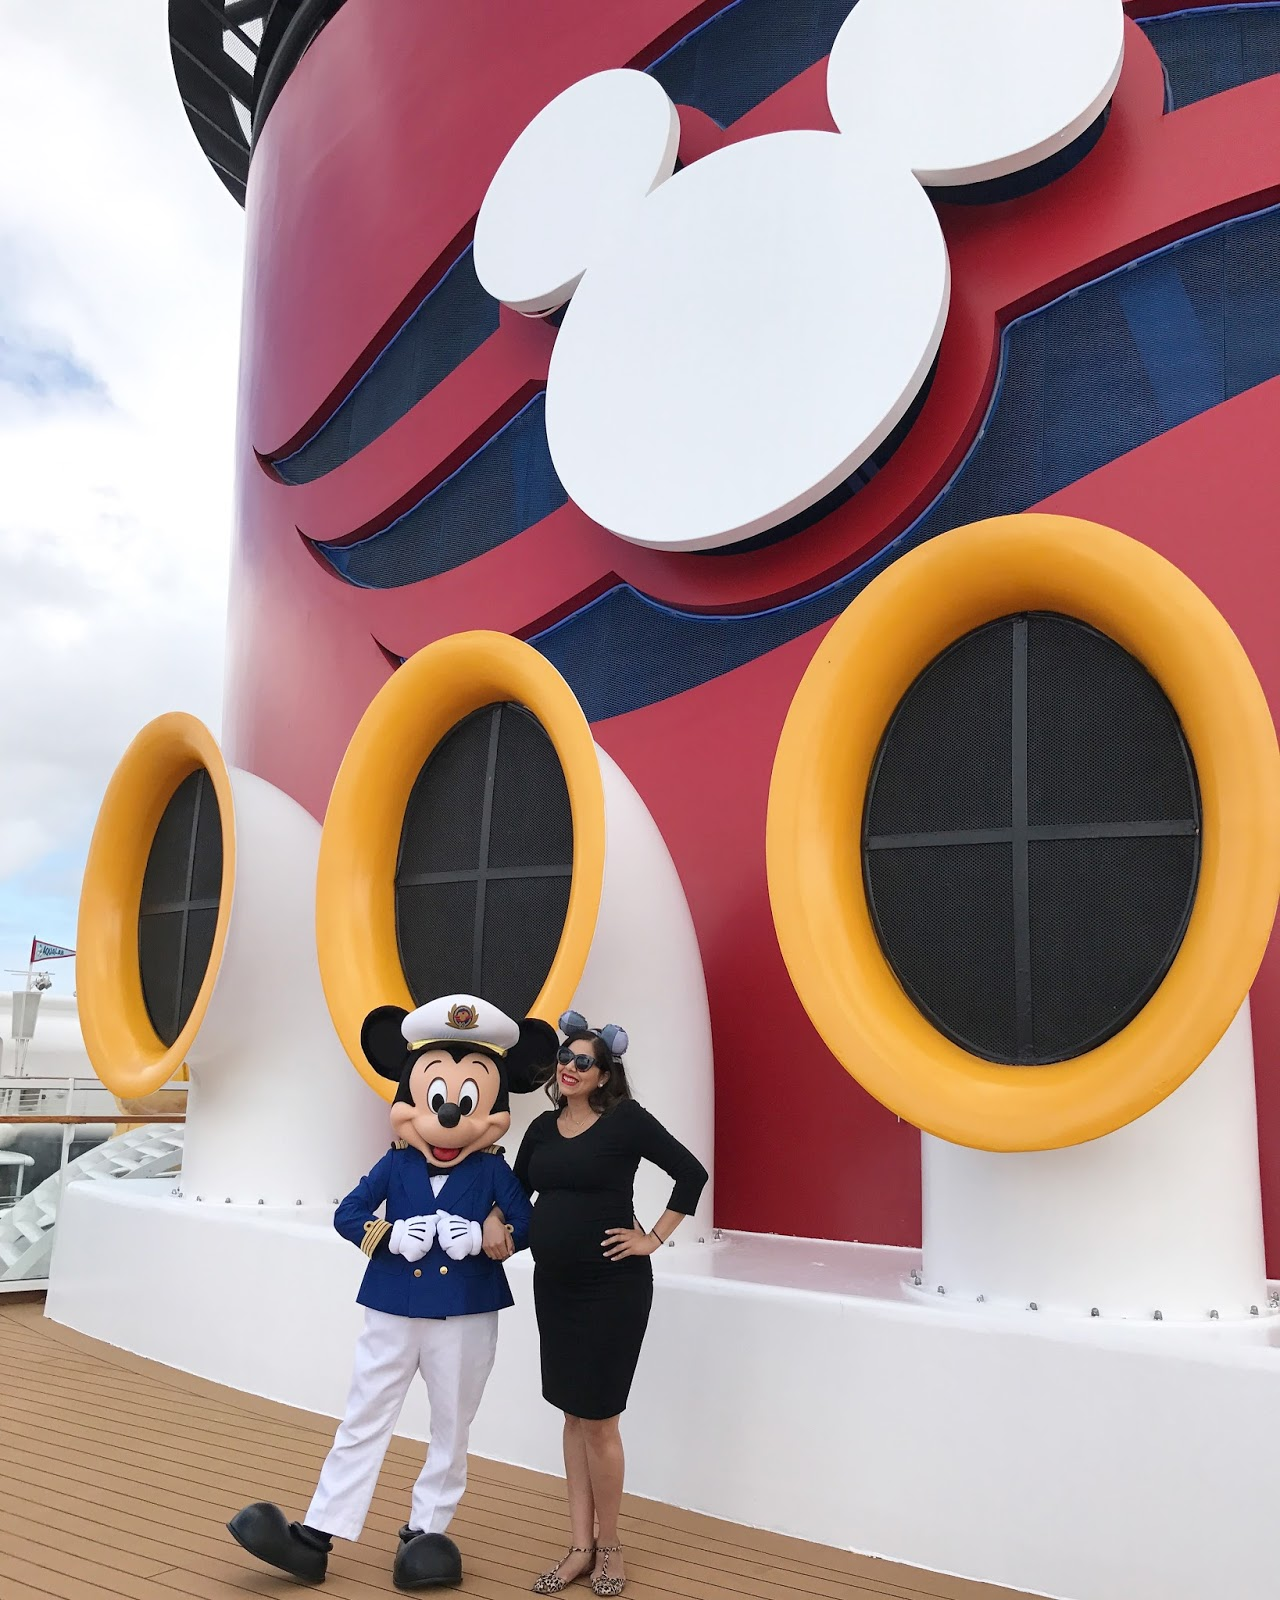 Disney Wonder Cruise Media Tour Recap, San Diego Lifestyle Blogger, San Diego Fashion Blogger